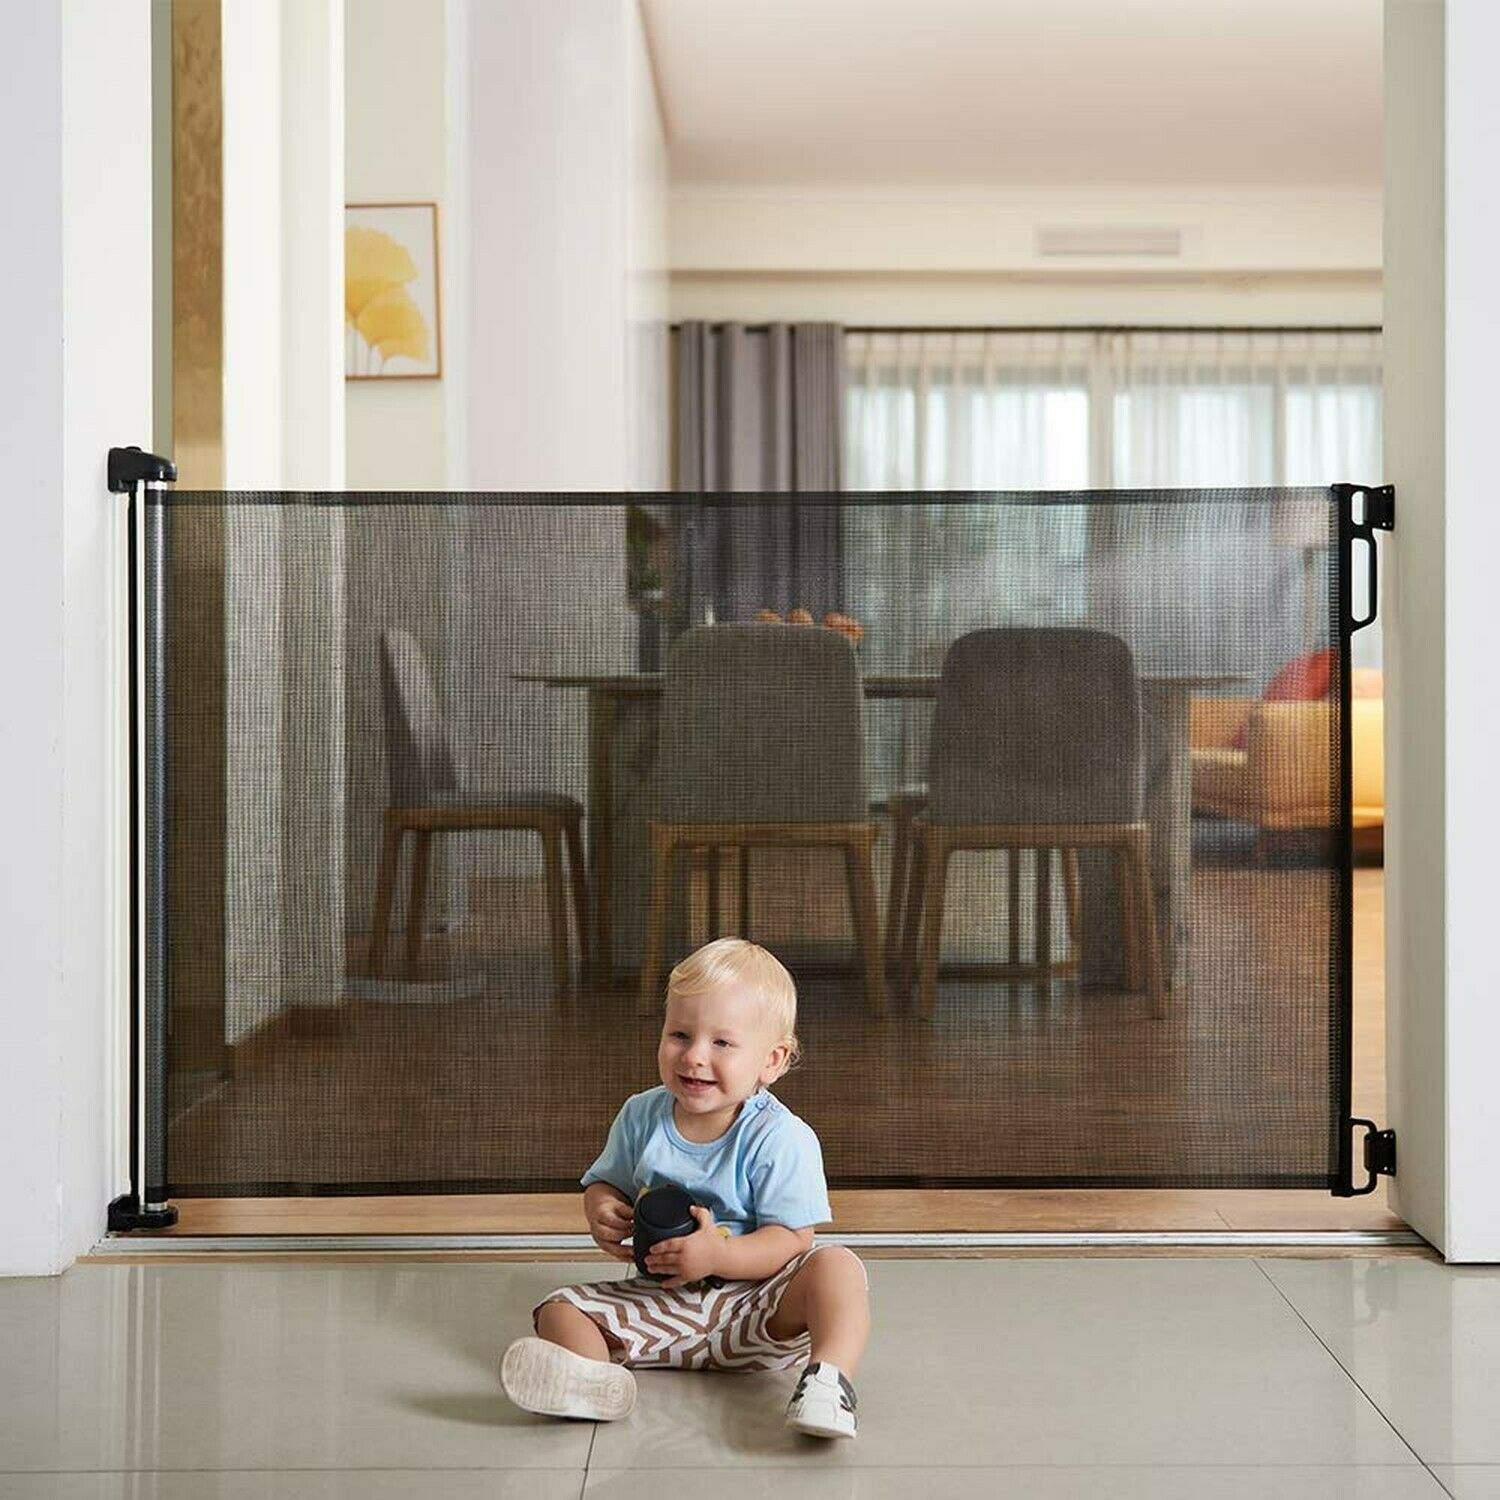 Safety Gate for babies and pets